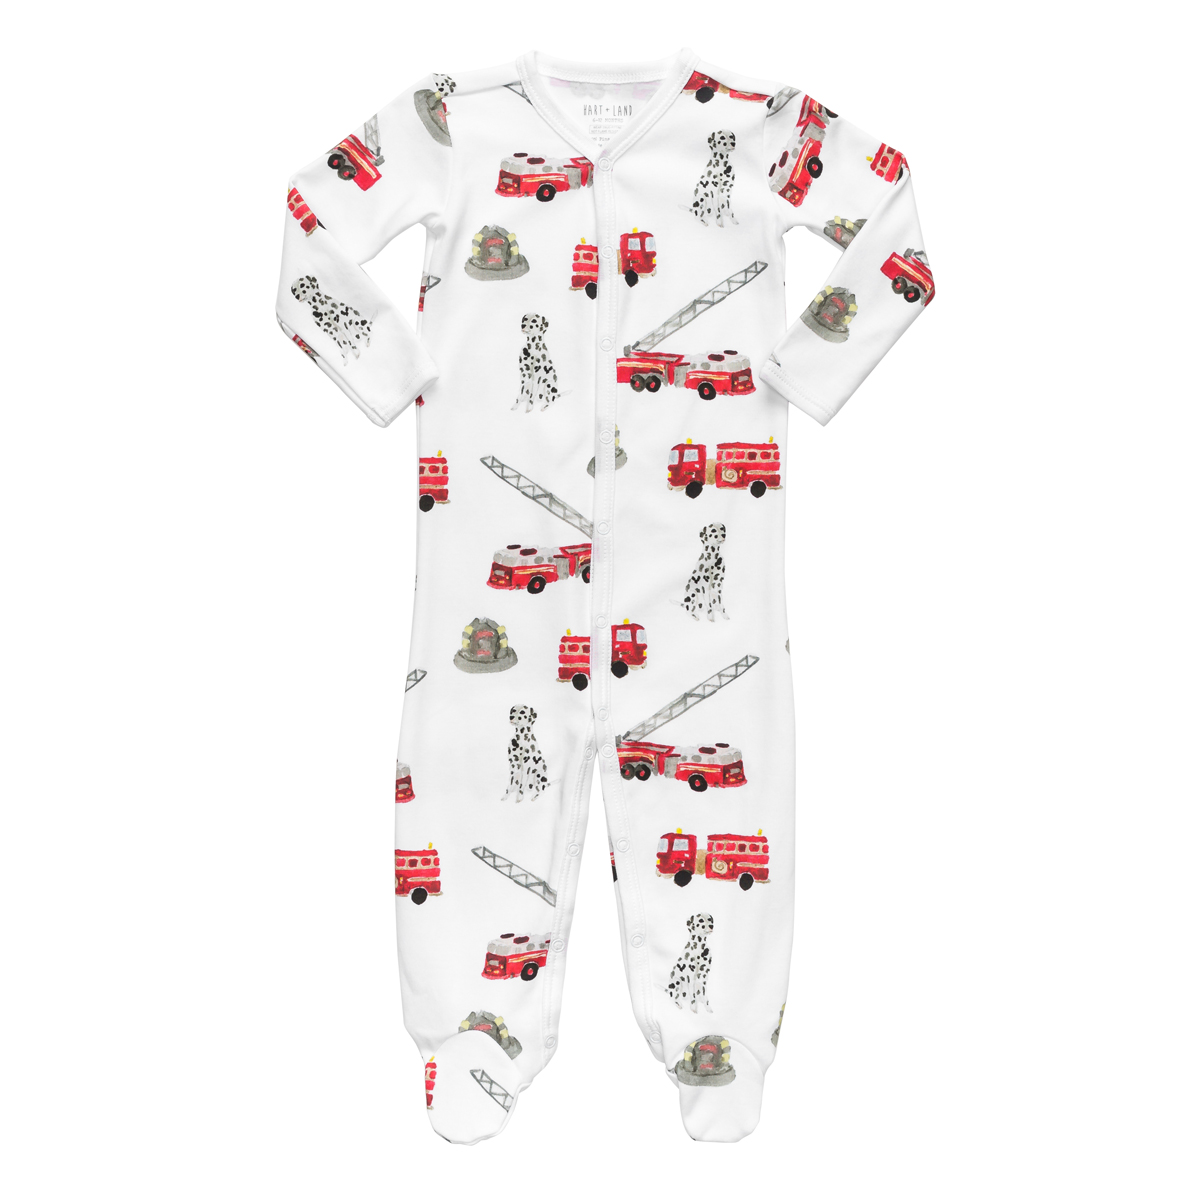 Hart + Land Footed Bodysuit PJ in Fire Trucks Print